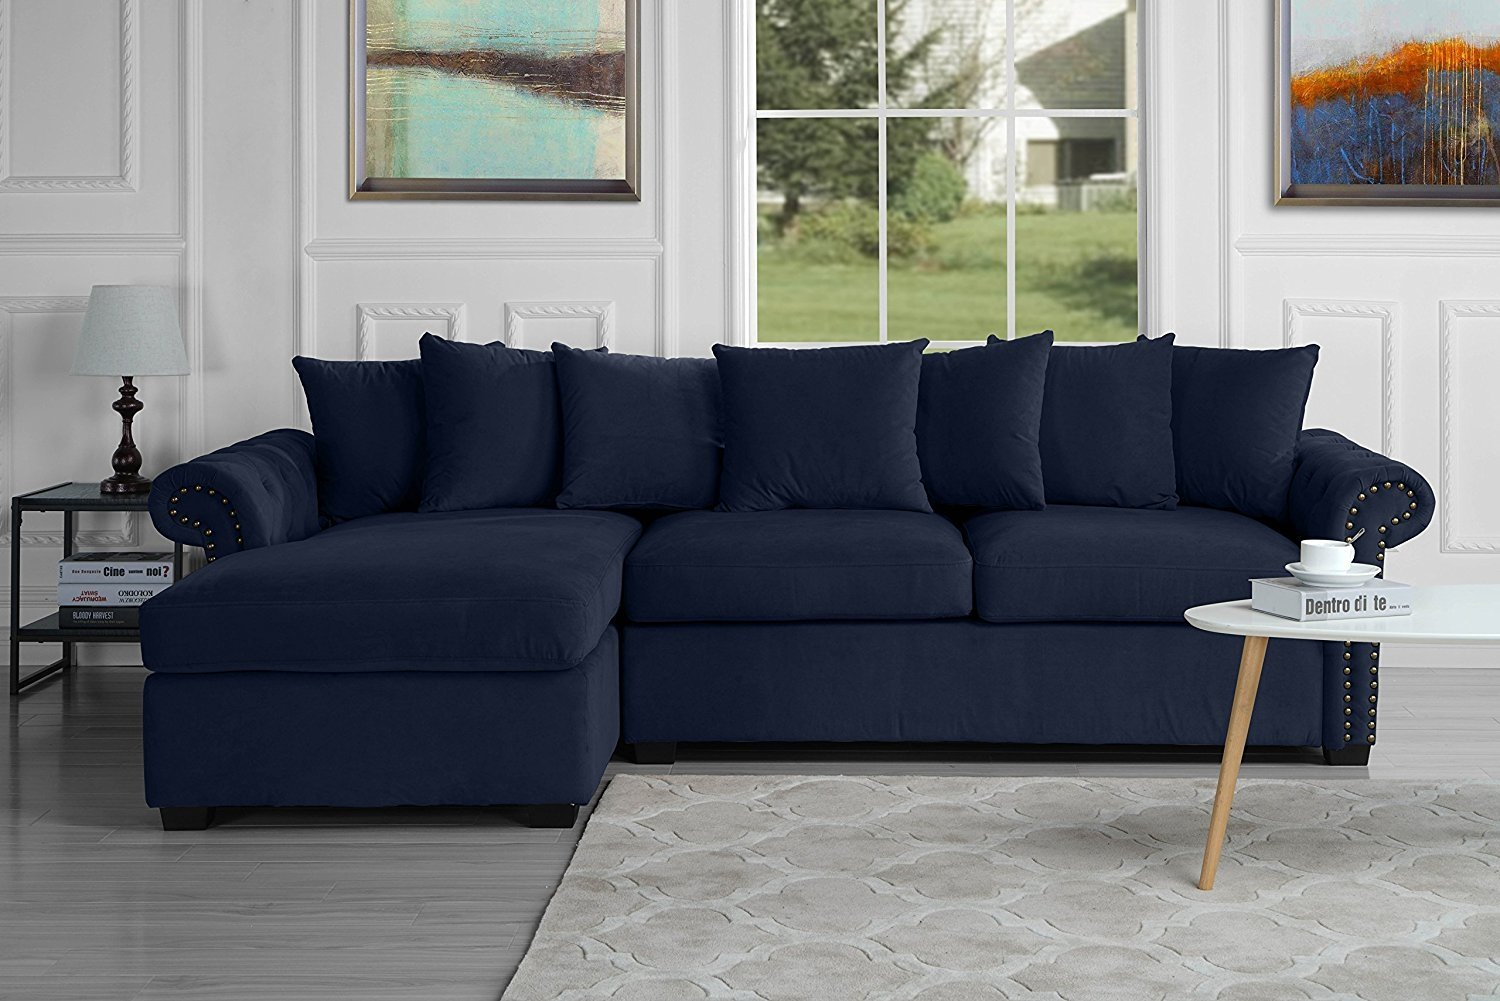 Modern Large Tufted Velvet Sectional Sofa, Scroll Arm L Throughout Dream Navy 2 Piece Modular Sofas (View 9 of 15)